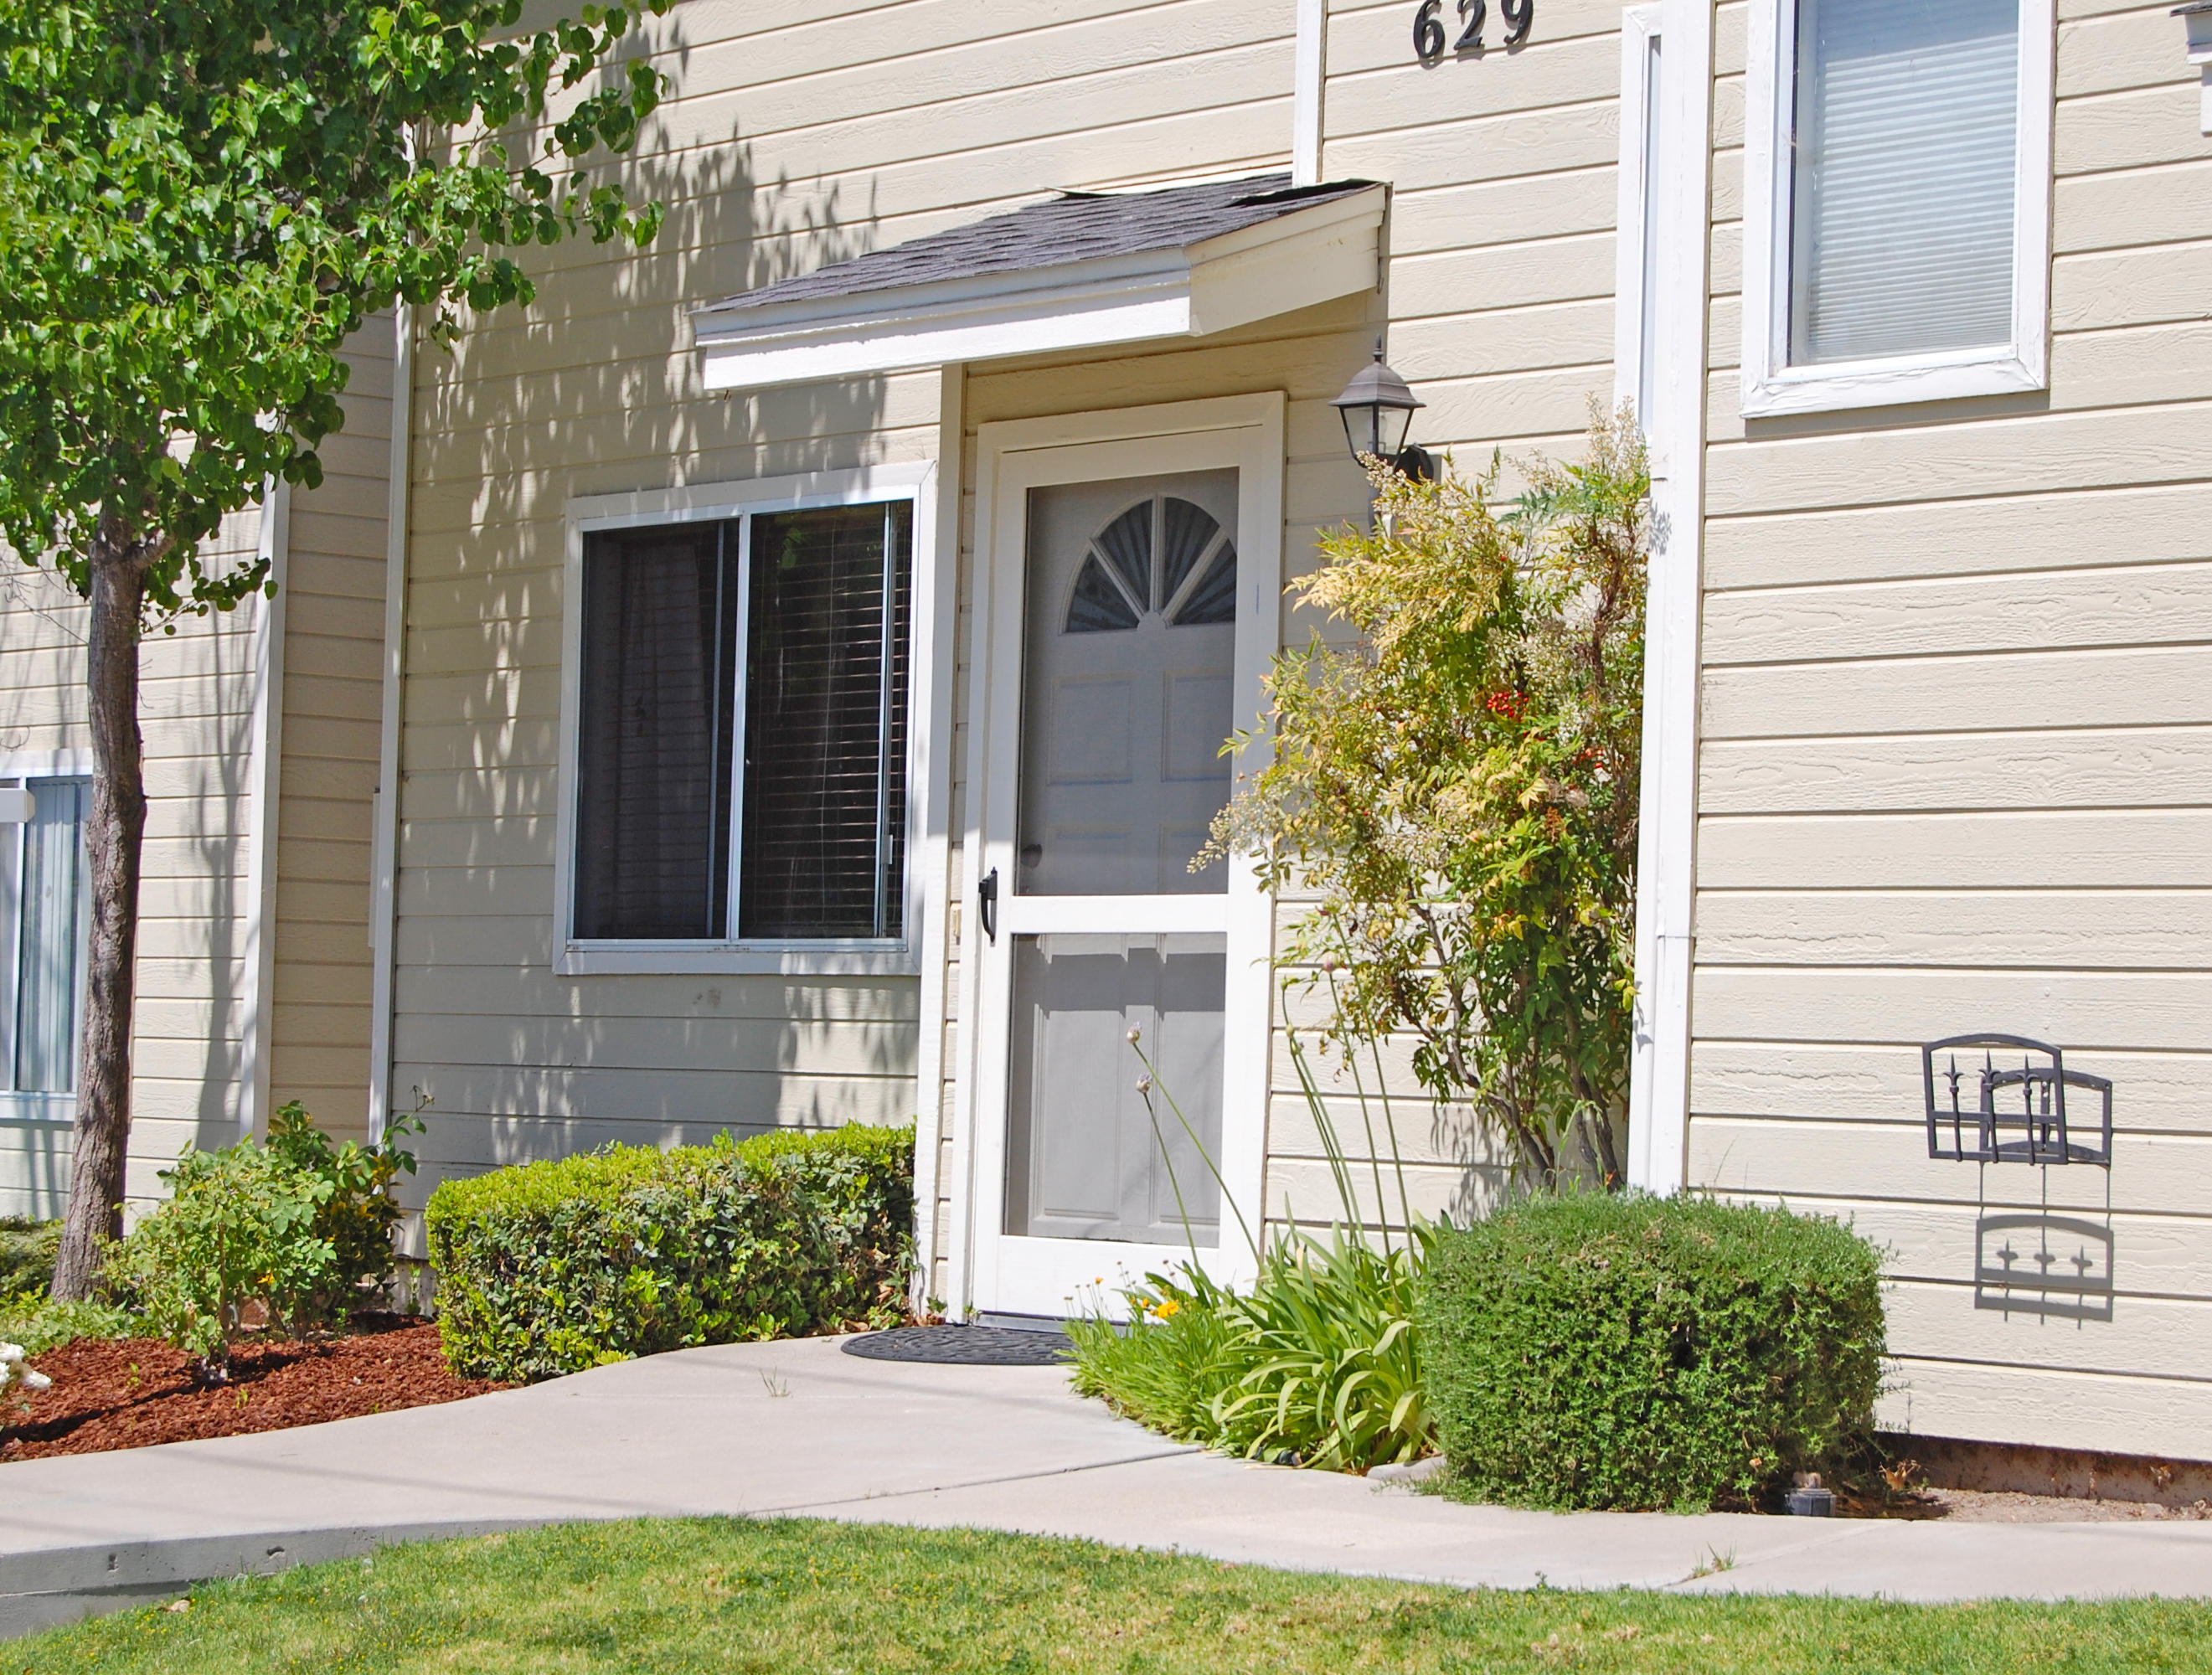 Property photo for 629 Central Ave #A Buellton, California 93427 - 14-1455